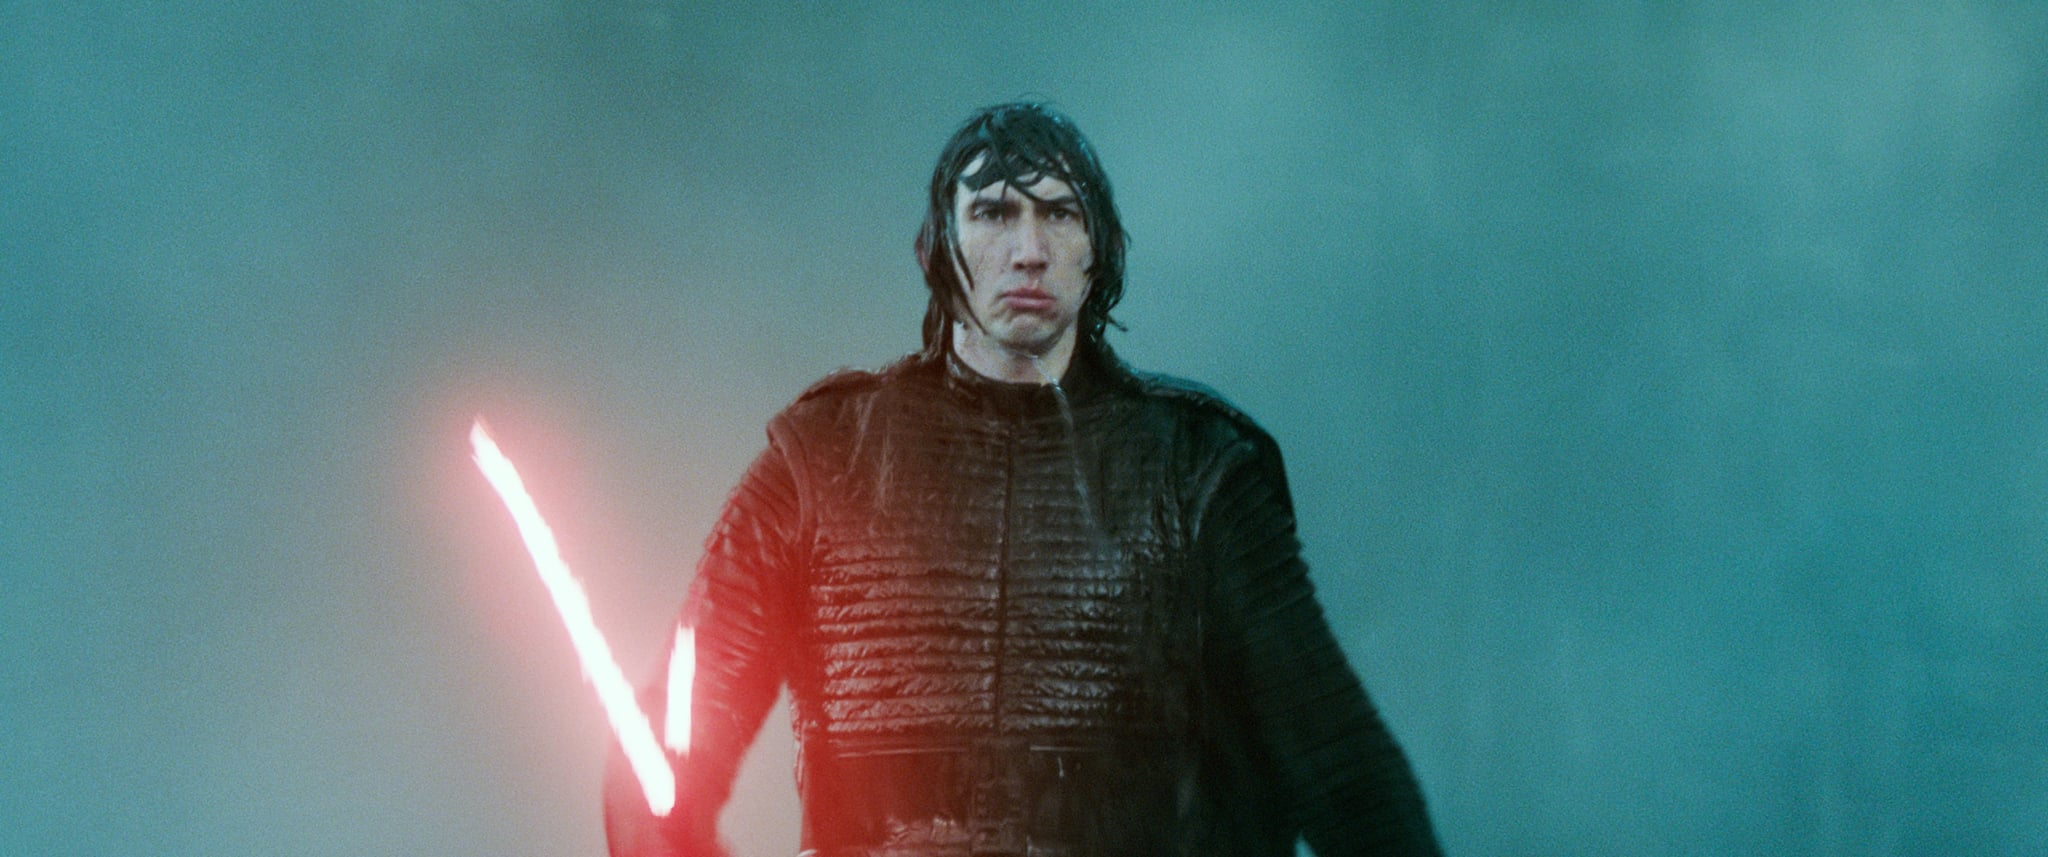 STAR WARS: THE RISE OF SKYWALKER, (aka STAR WARS: EPISODE IX), Adam Driver as Kylo Ren, 2019.  Walt Disney Studios Motion Pictures /  Lucasfilm / courtesy Everett Collection